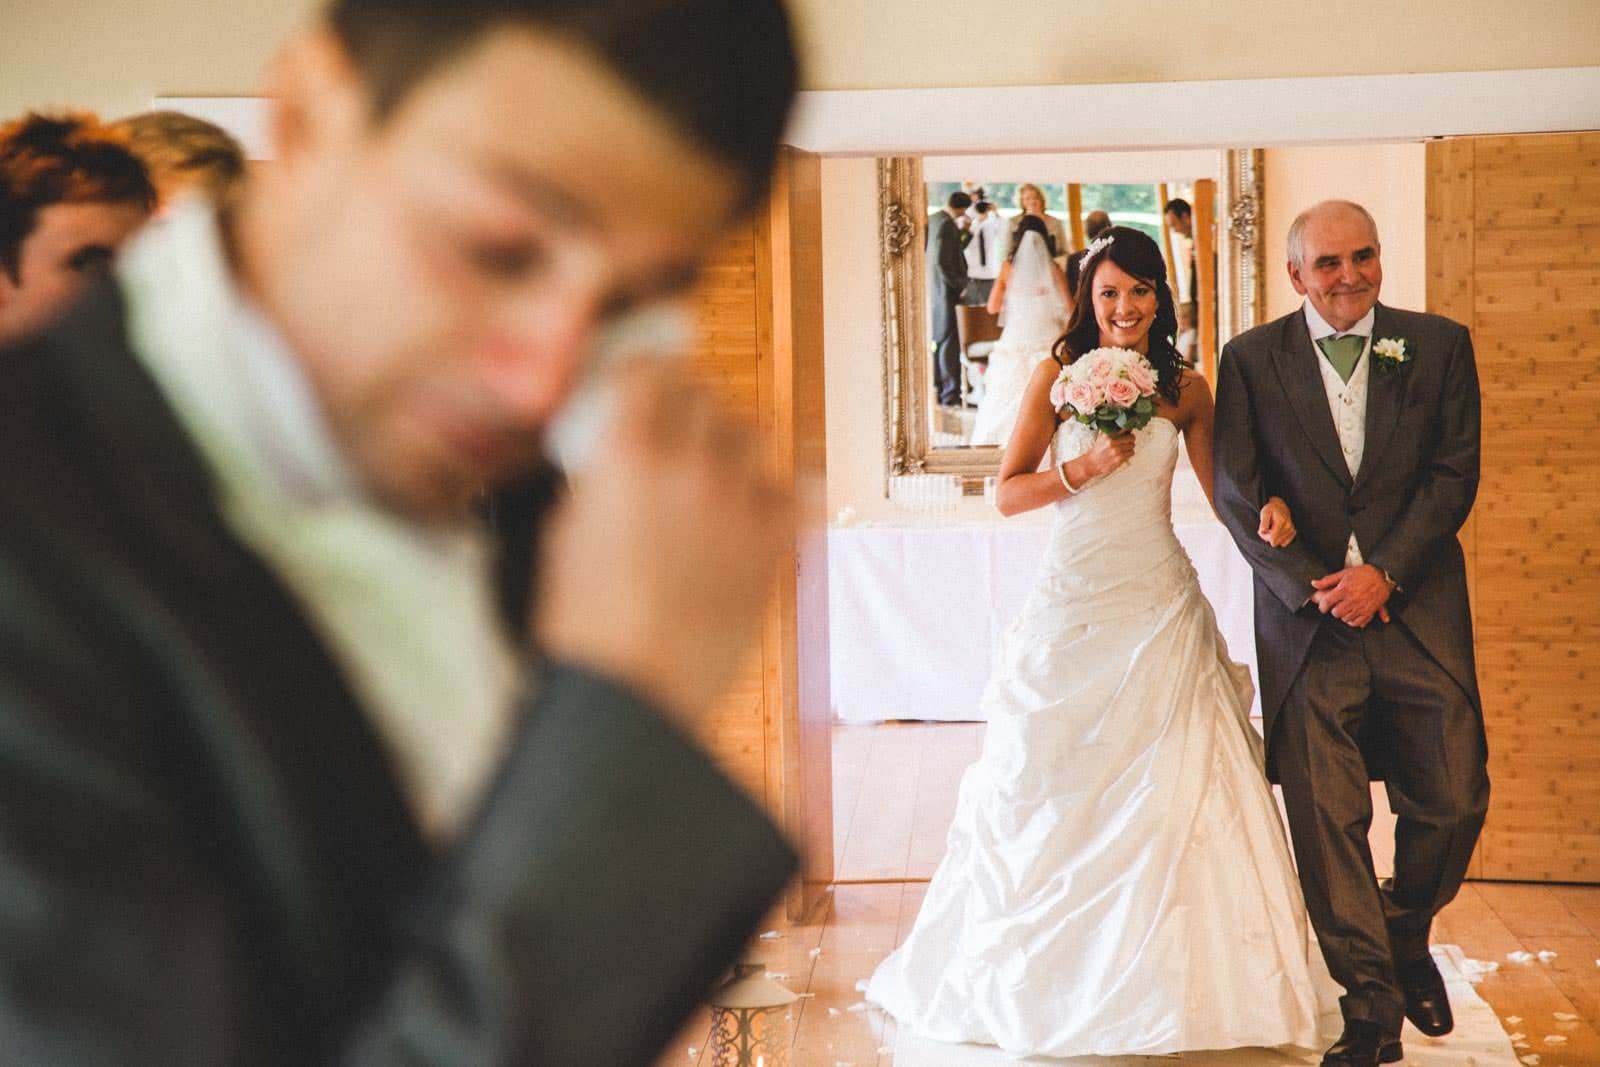 Groom crying in the foreground as Bride enters the room with her father